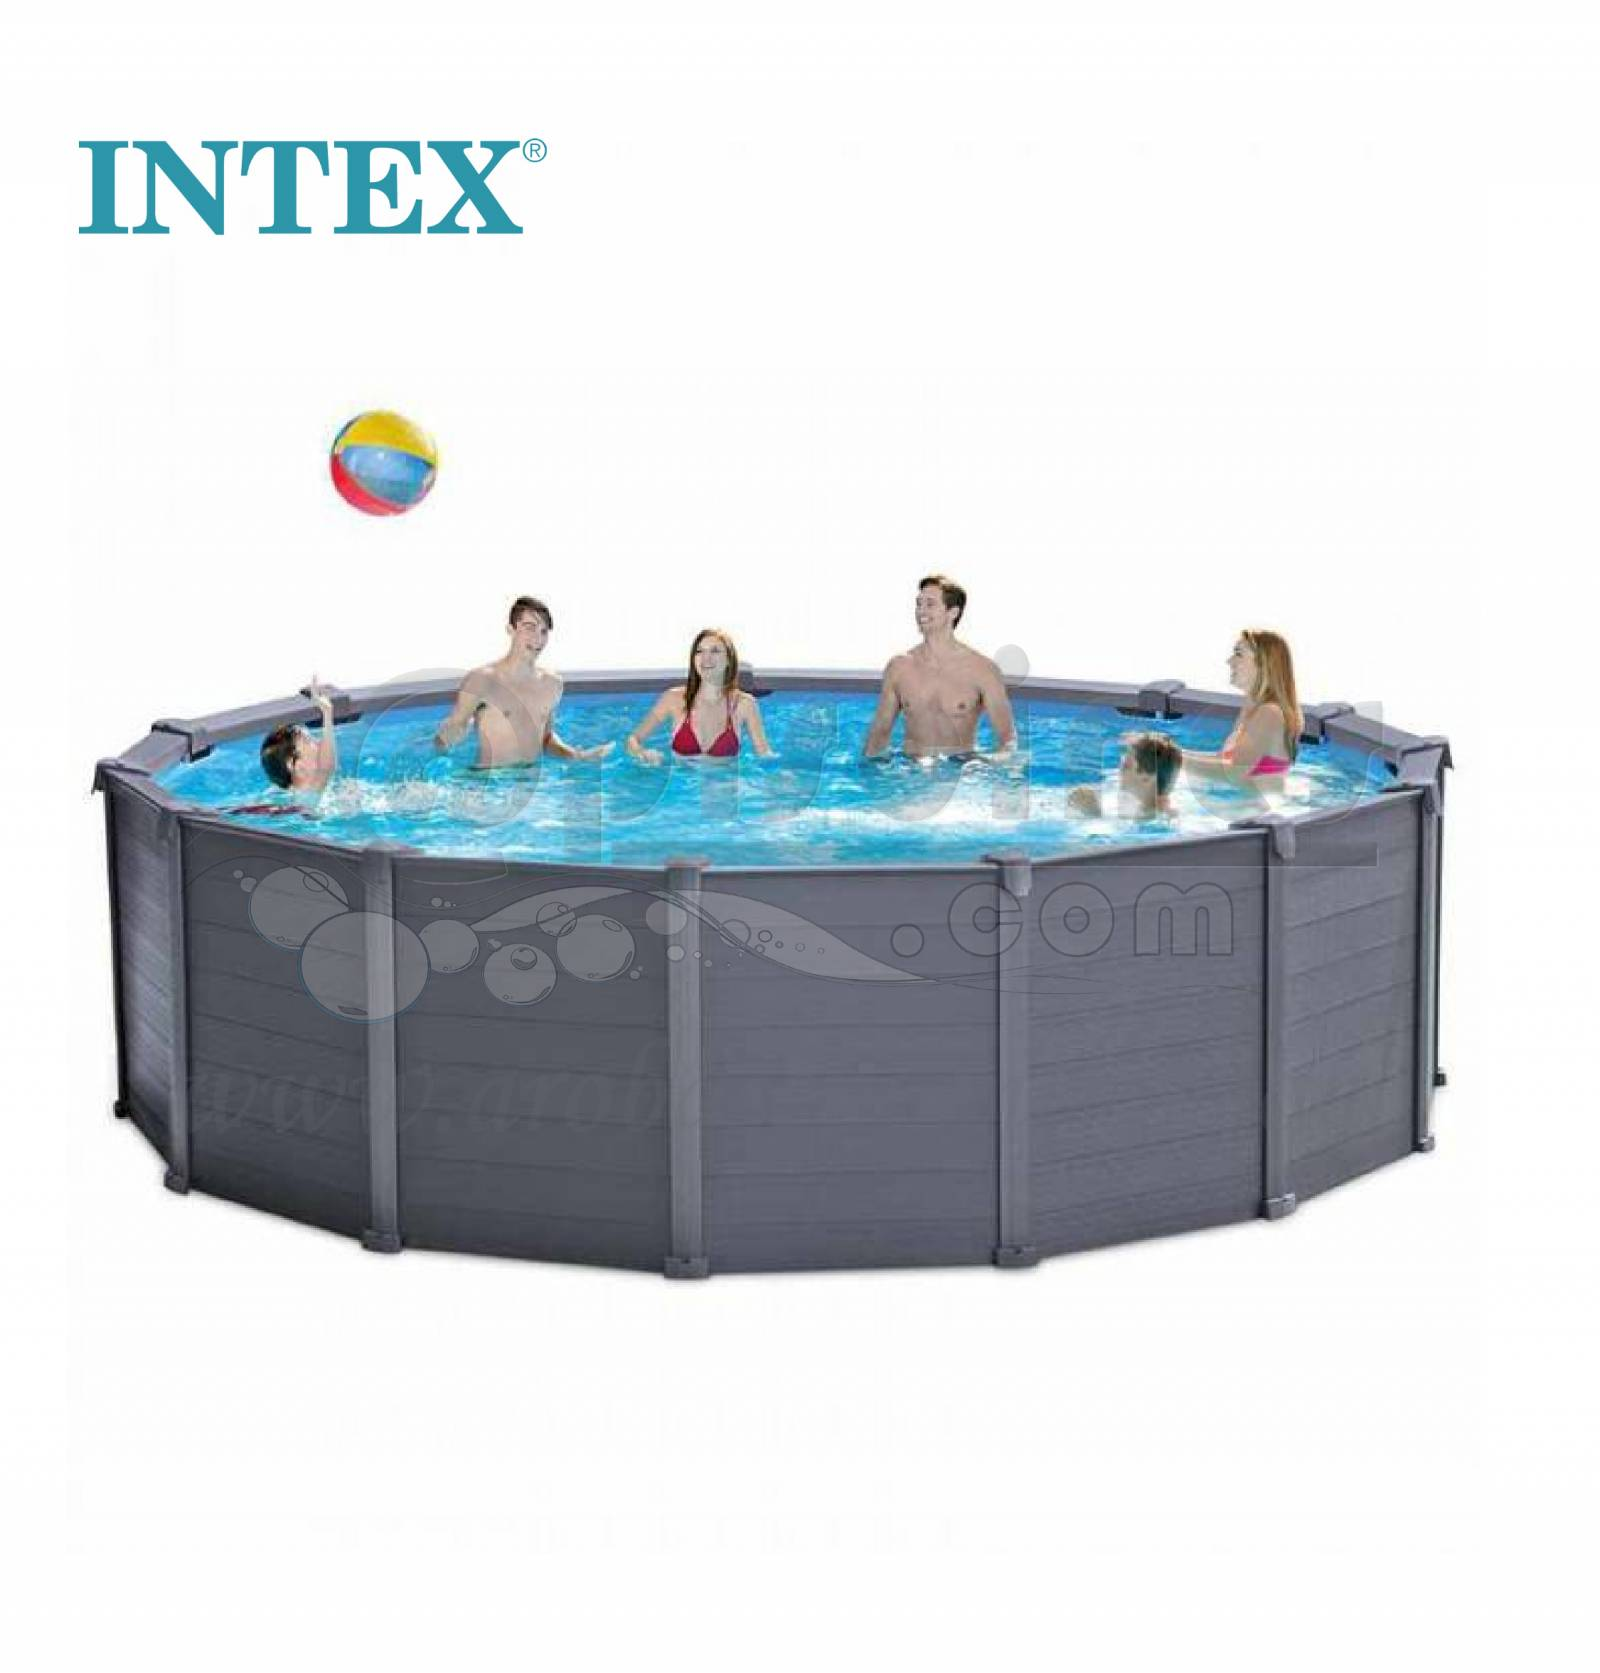 piscine tubulaire hors sol ronde 4 78m intex graphite piscine en ligne arobase piscines. Black Bedroom Furniture Sets. Home Design Ideas